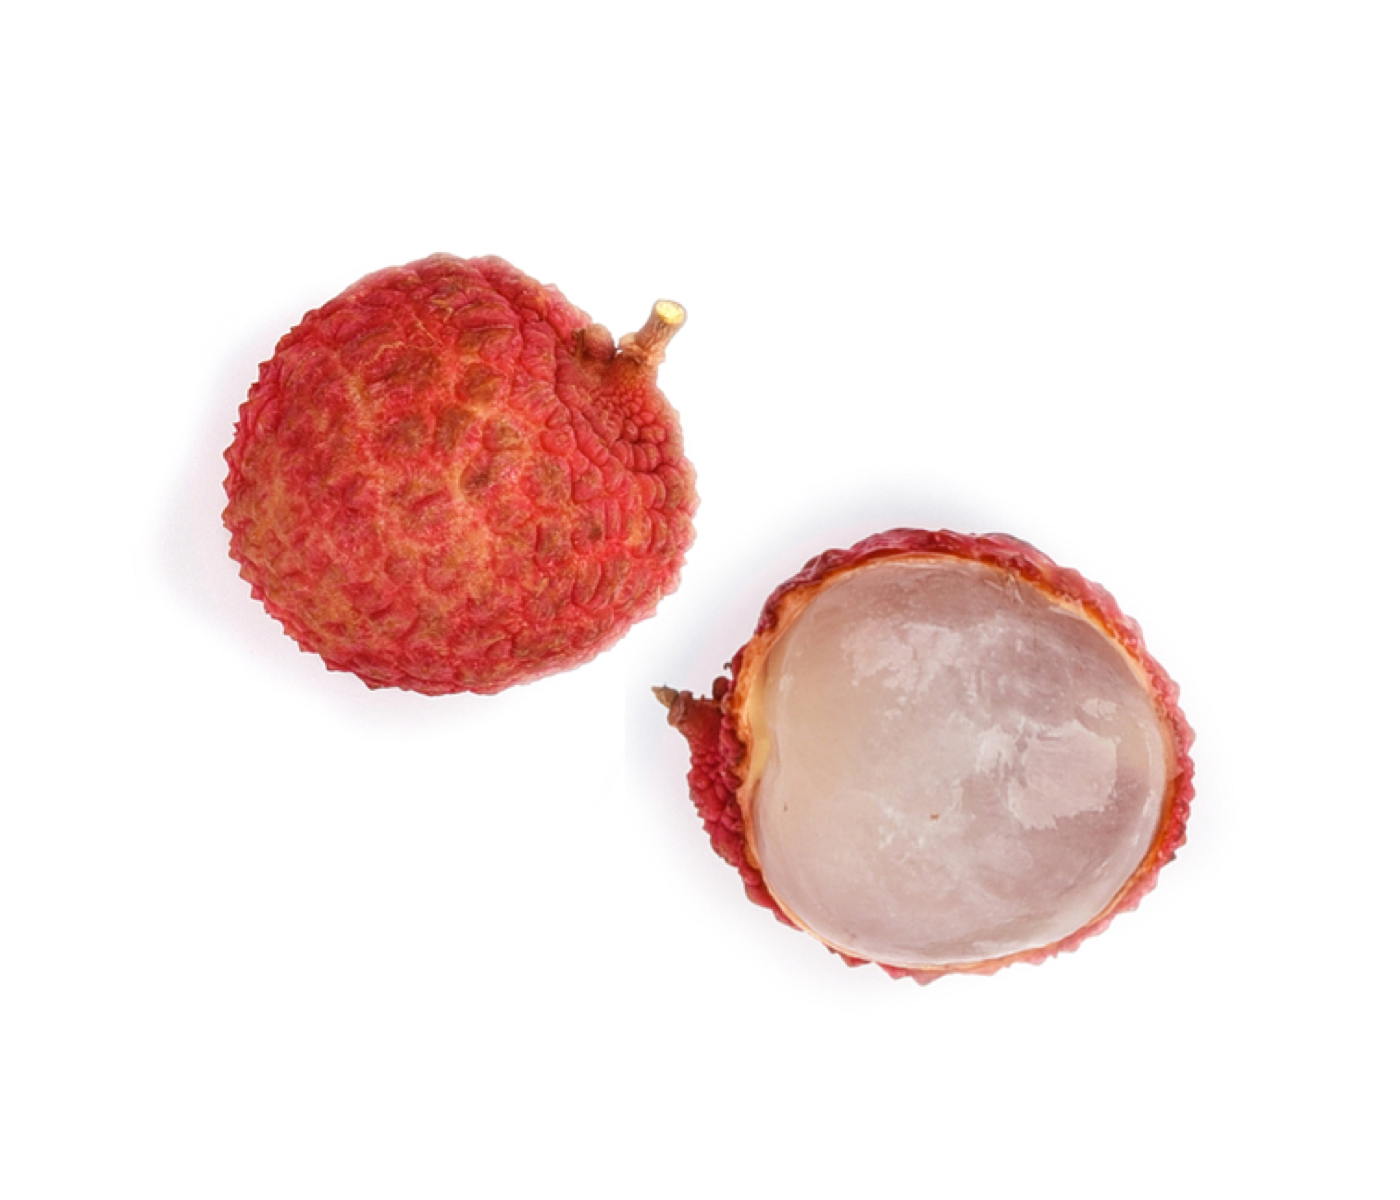 Lychee did you know